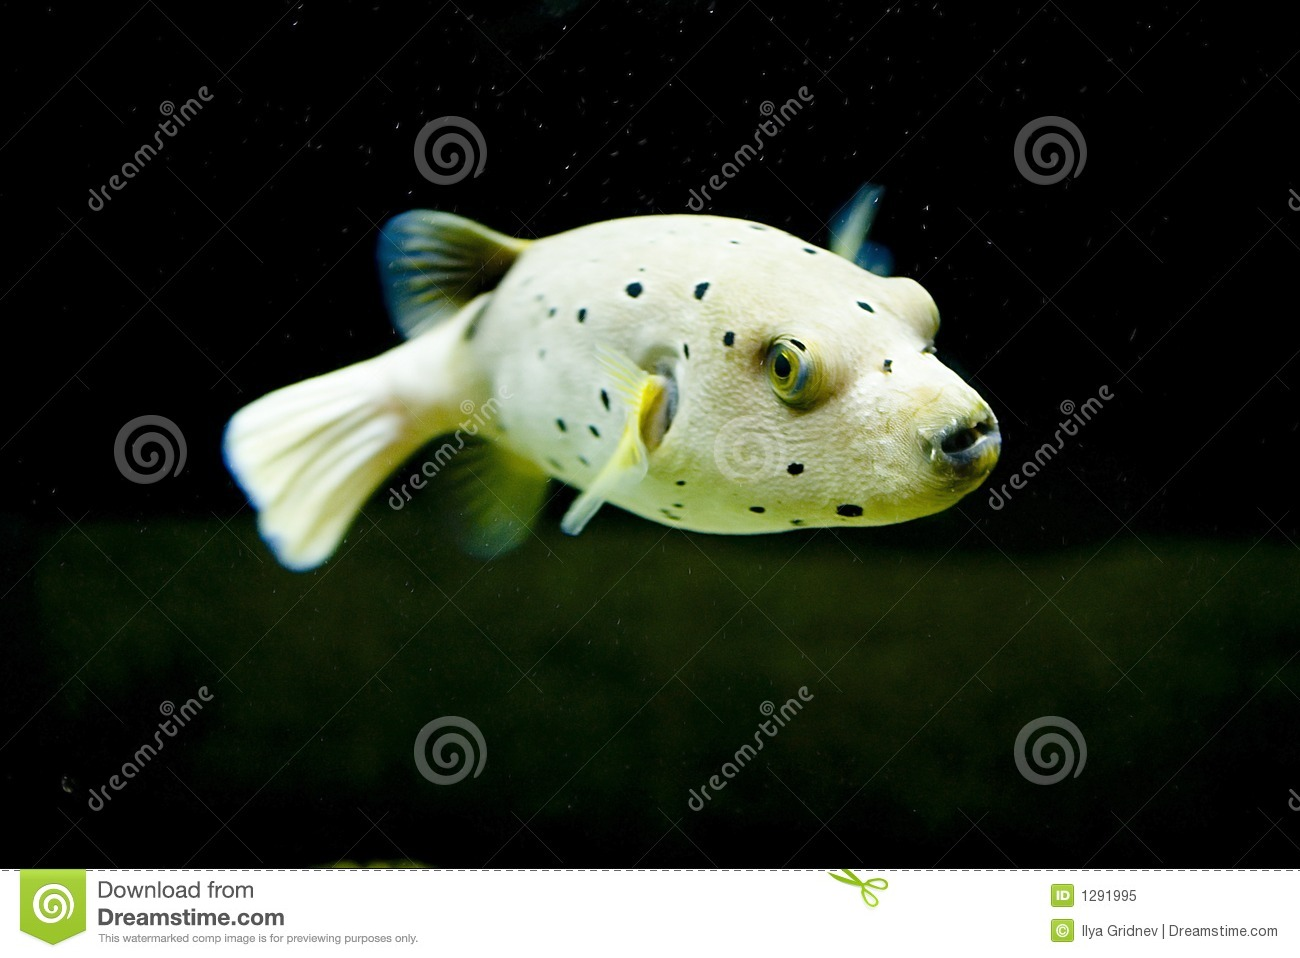 Exotic fish royalty free stock photo image 1291995 for Exotic pet fish